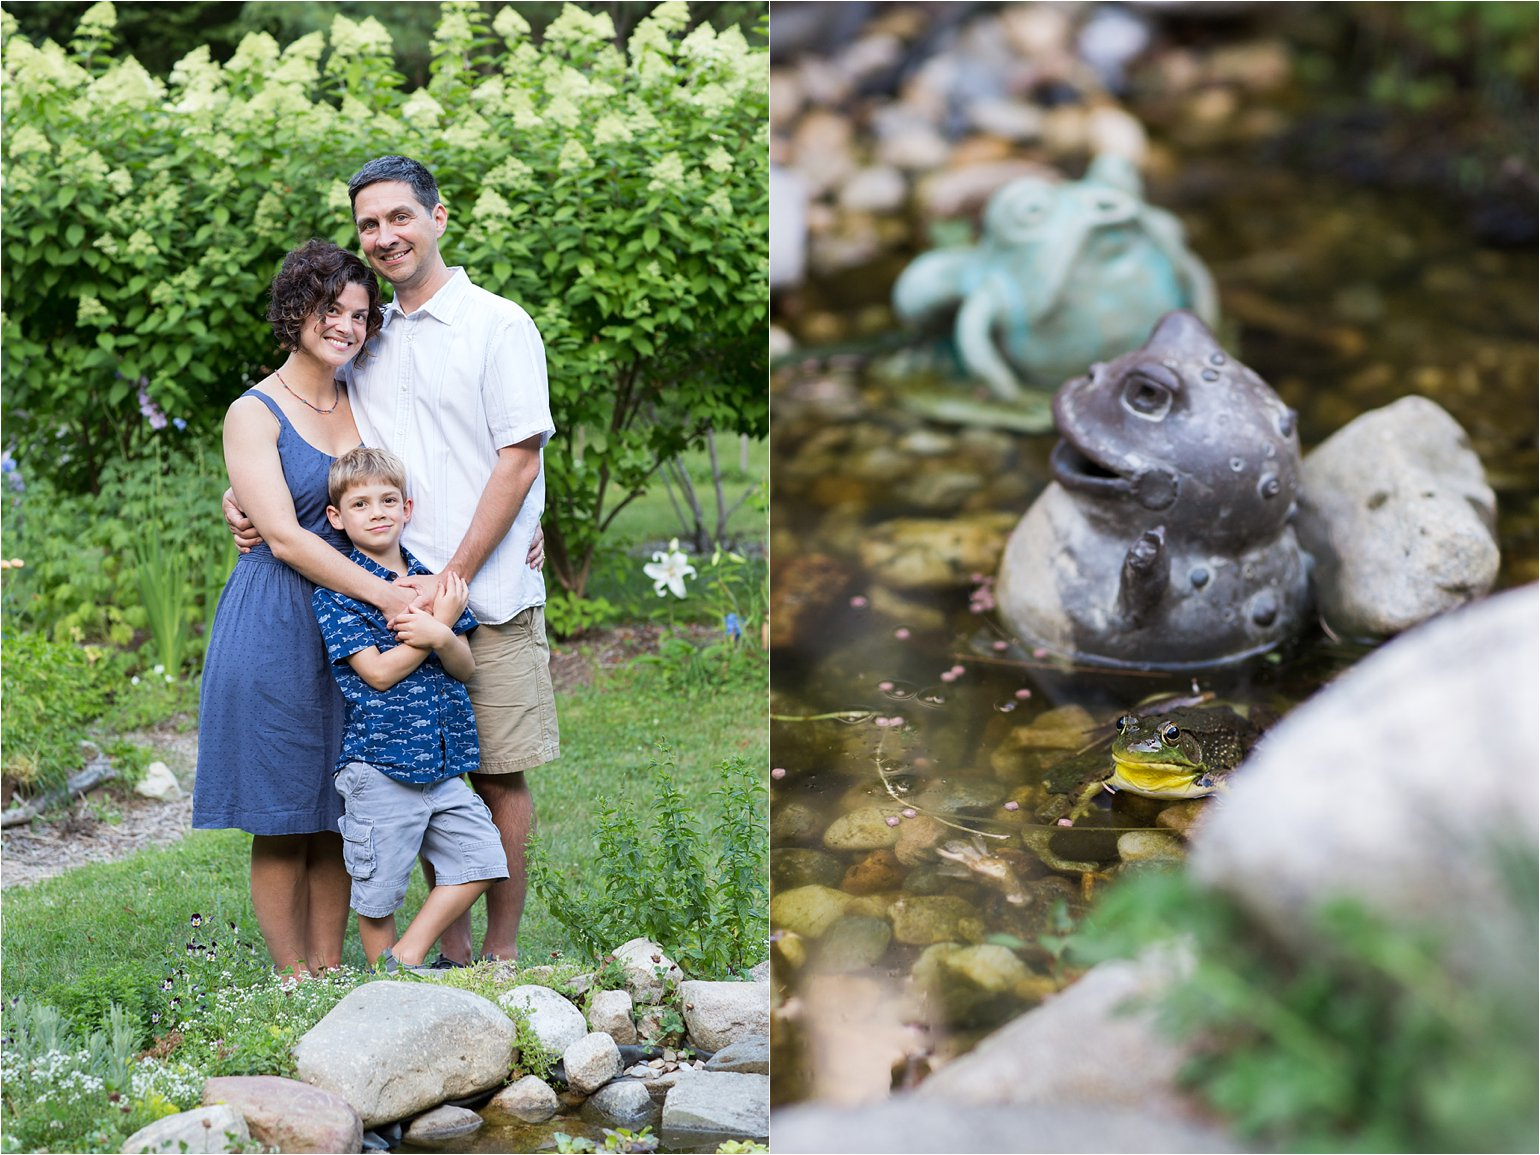 Family in Garden / Three Frogs © 2015 Maundy Mitchell